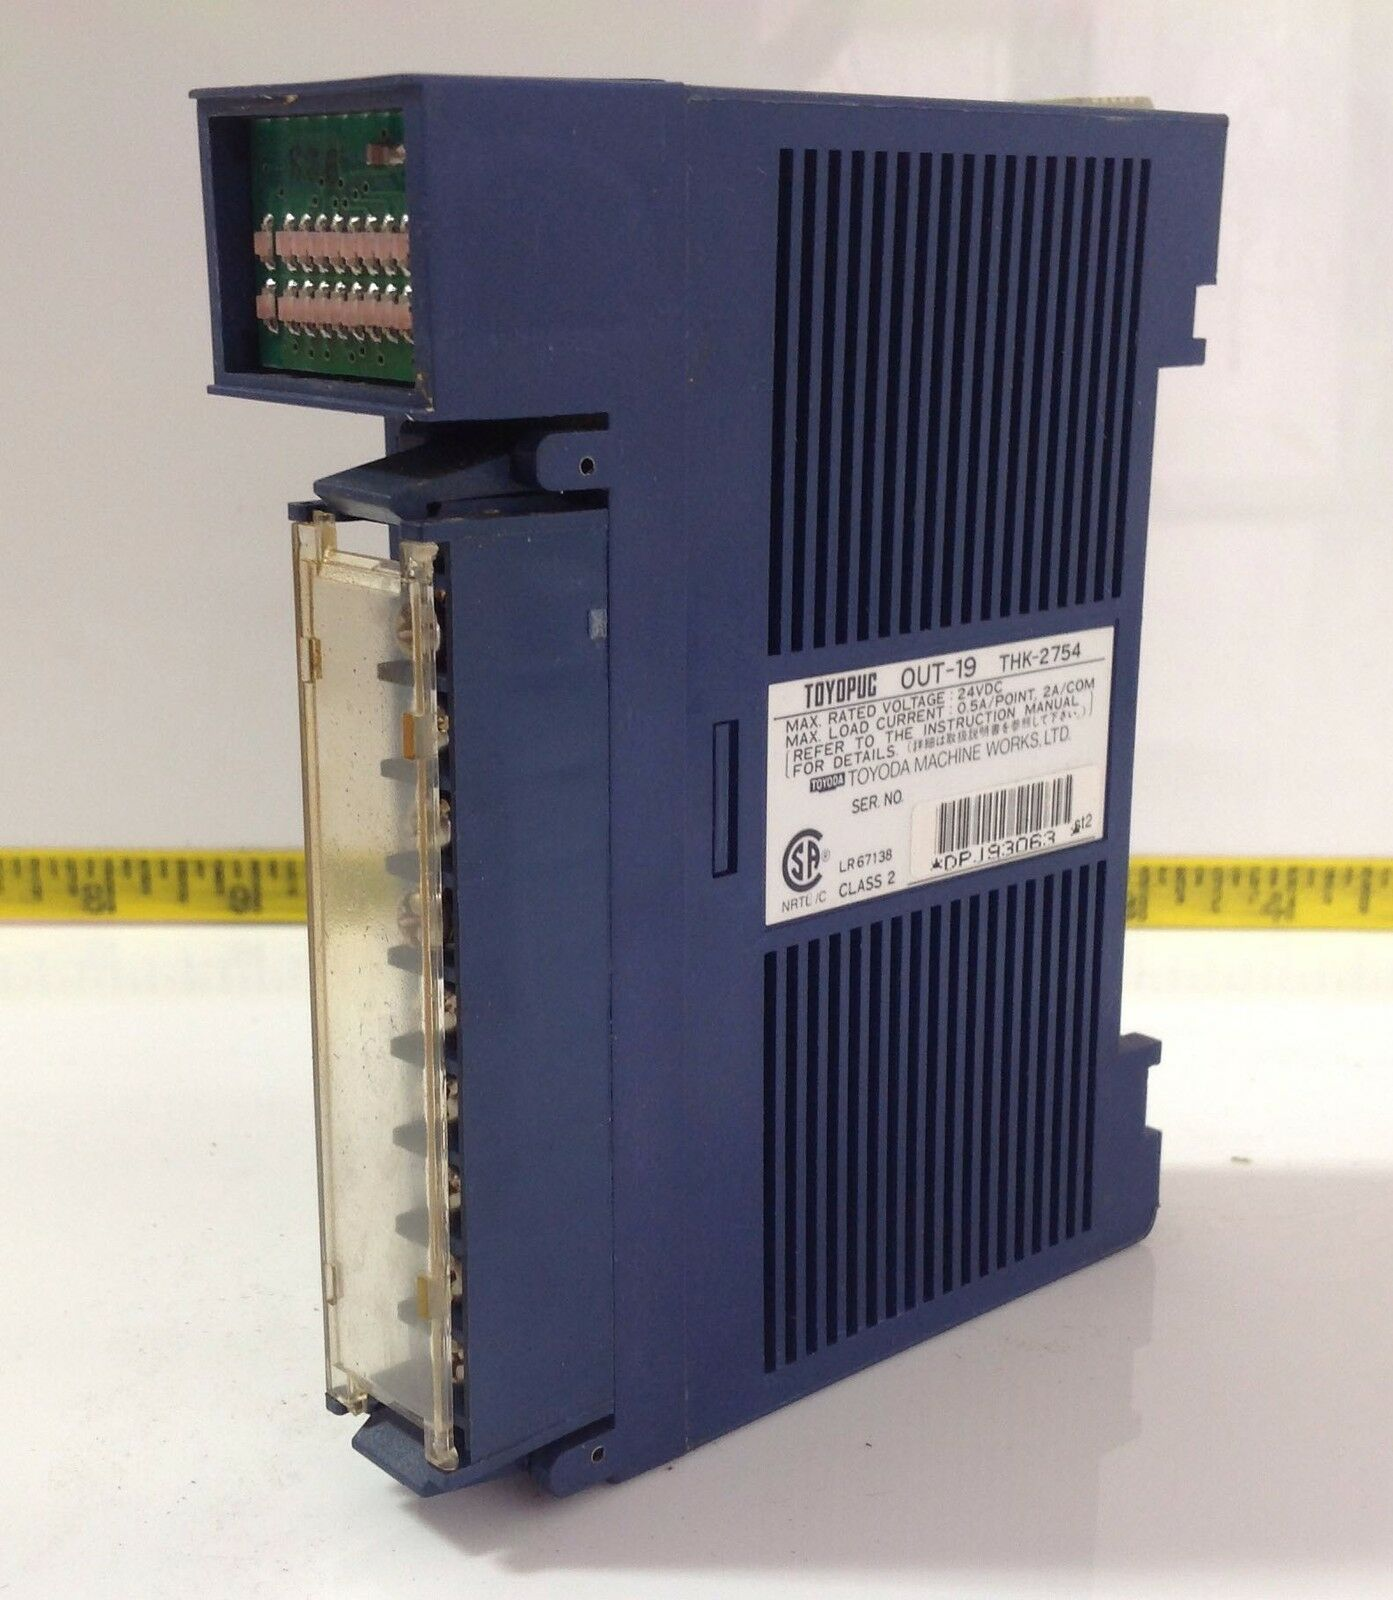 TOYOPUC OUTPUT MODULE OUT-19 24VDC 0.5A THK-2754